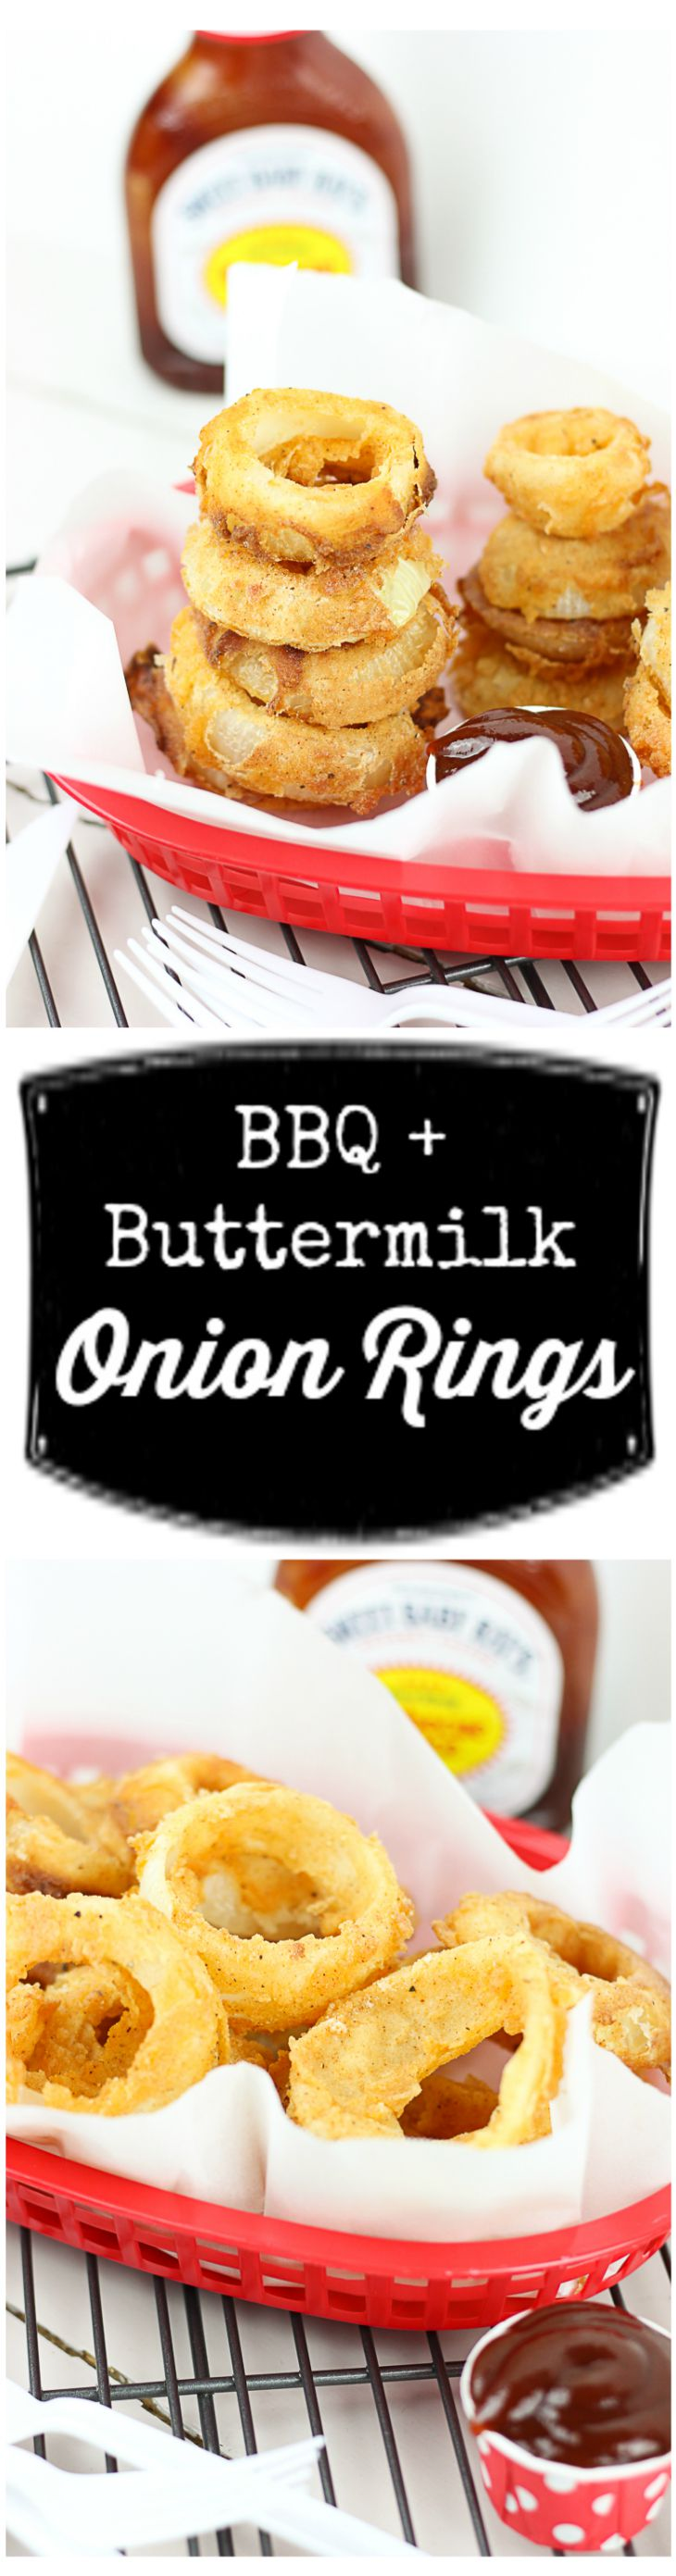 BBQ + Buttermilk Onion Rings